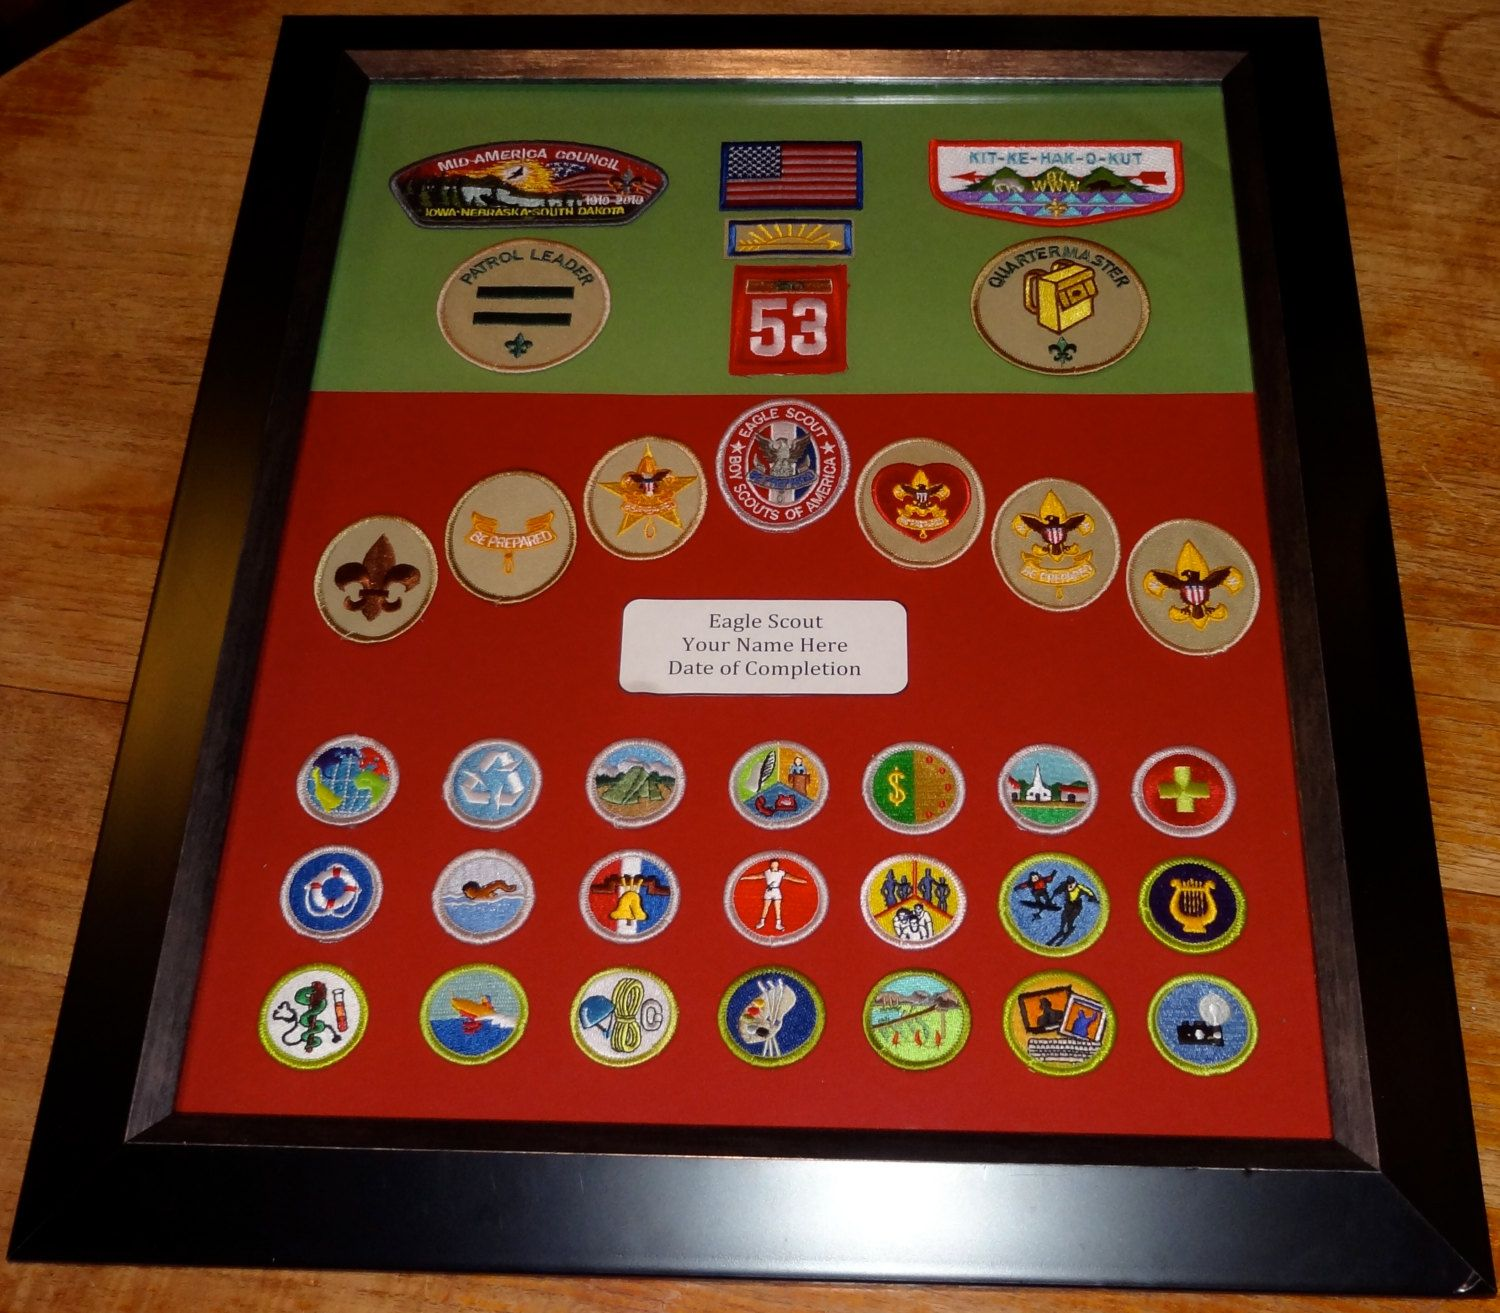 Eagle Scout Merit Badge 100 00 Via Etsy Very Nice